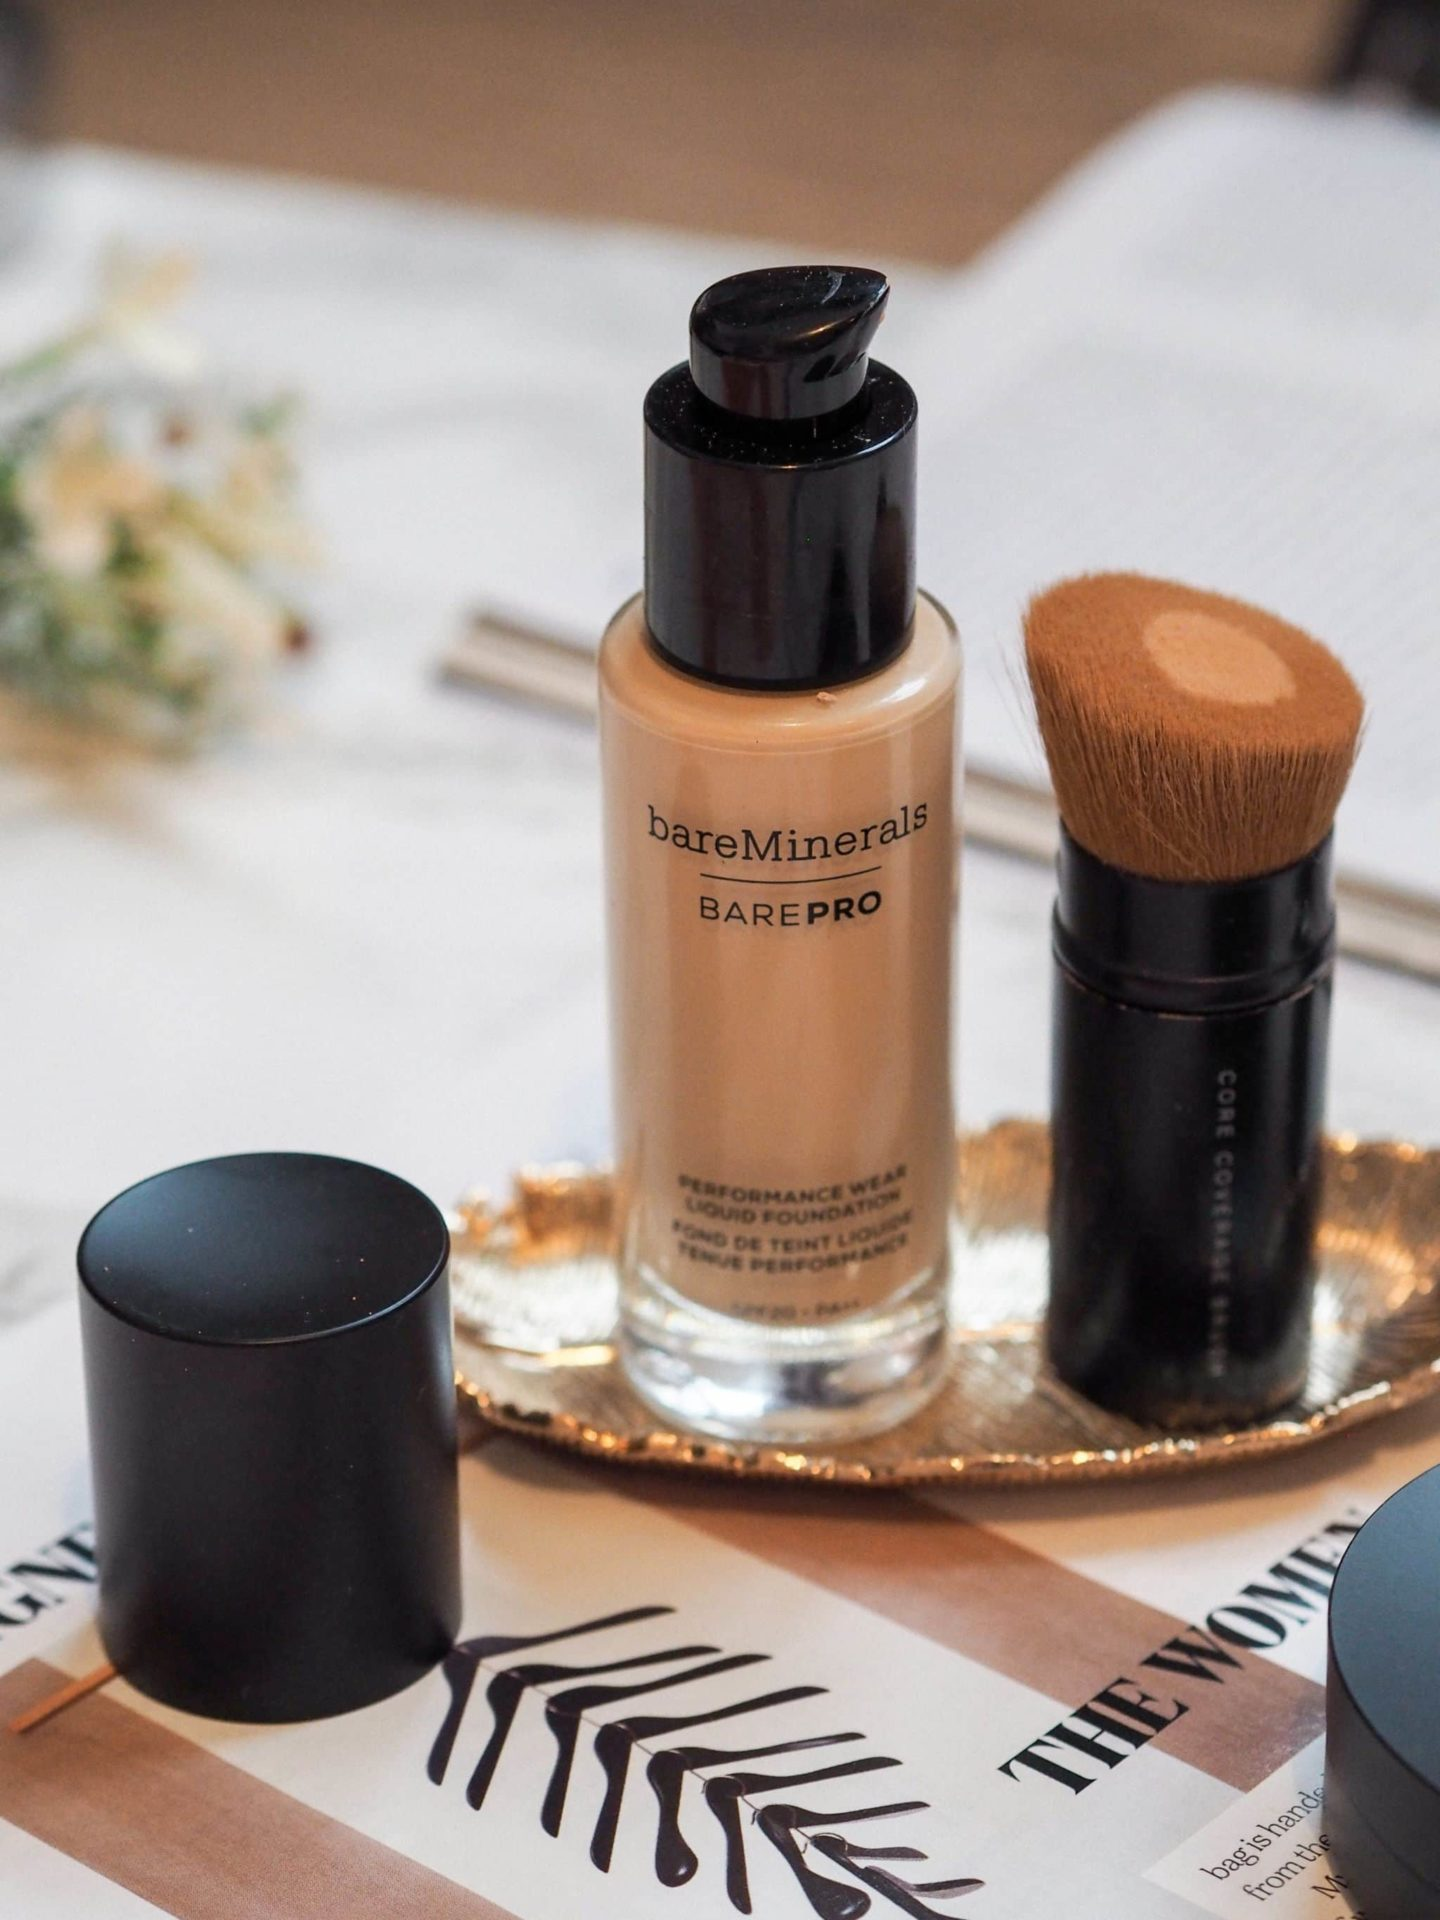 Bsreminerals bare pro liquid foundation